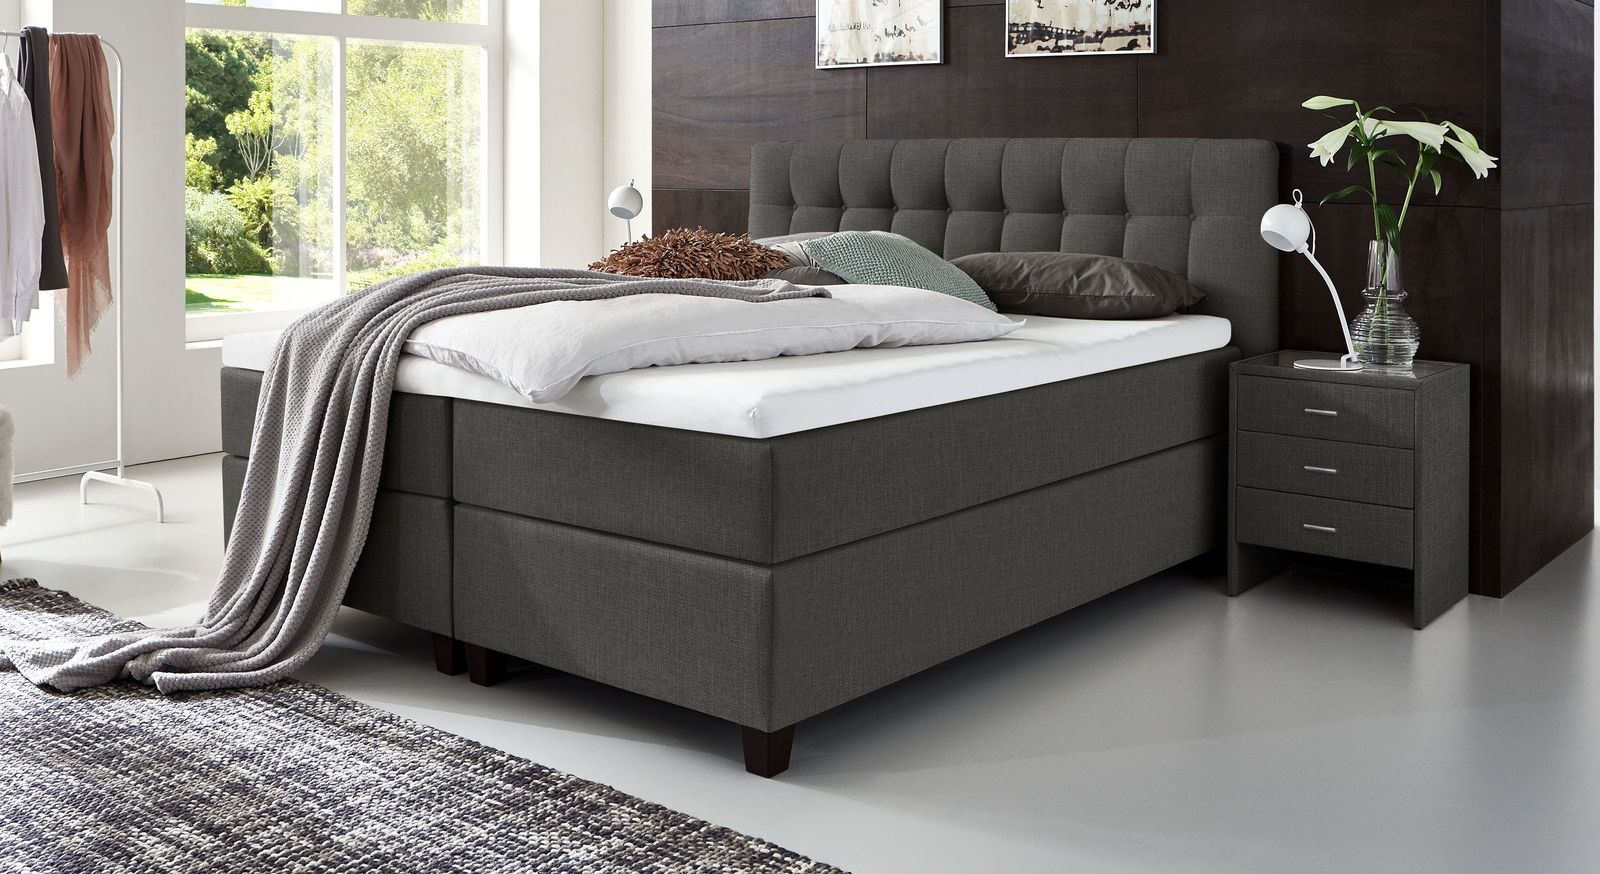 66 cm hohes Boxspringbett Luciano aus meliertem Webstoff in Anthrazit